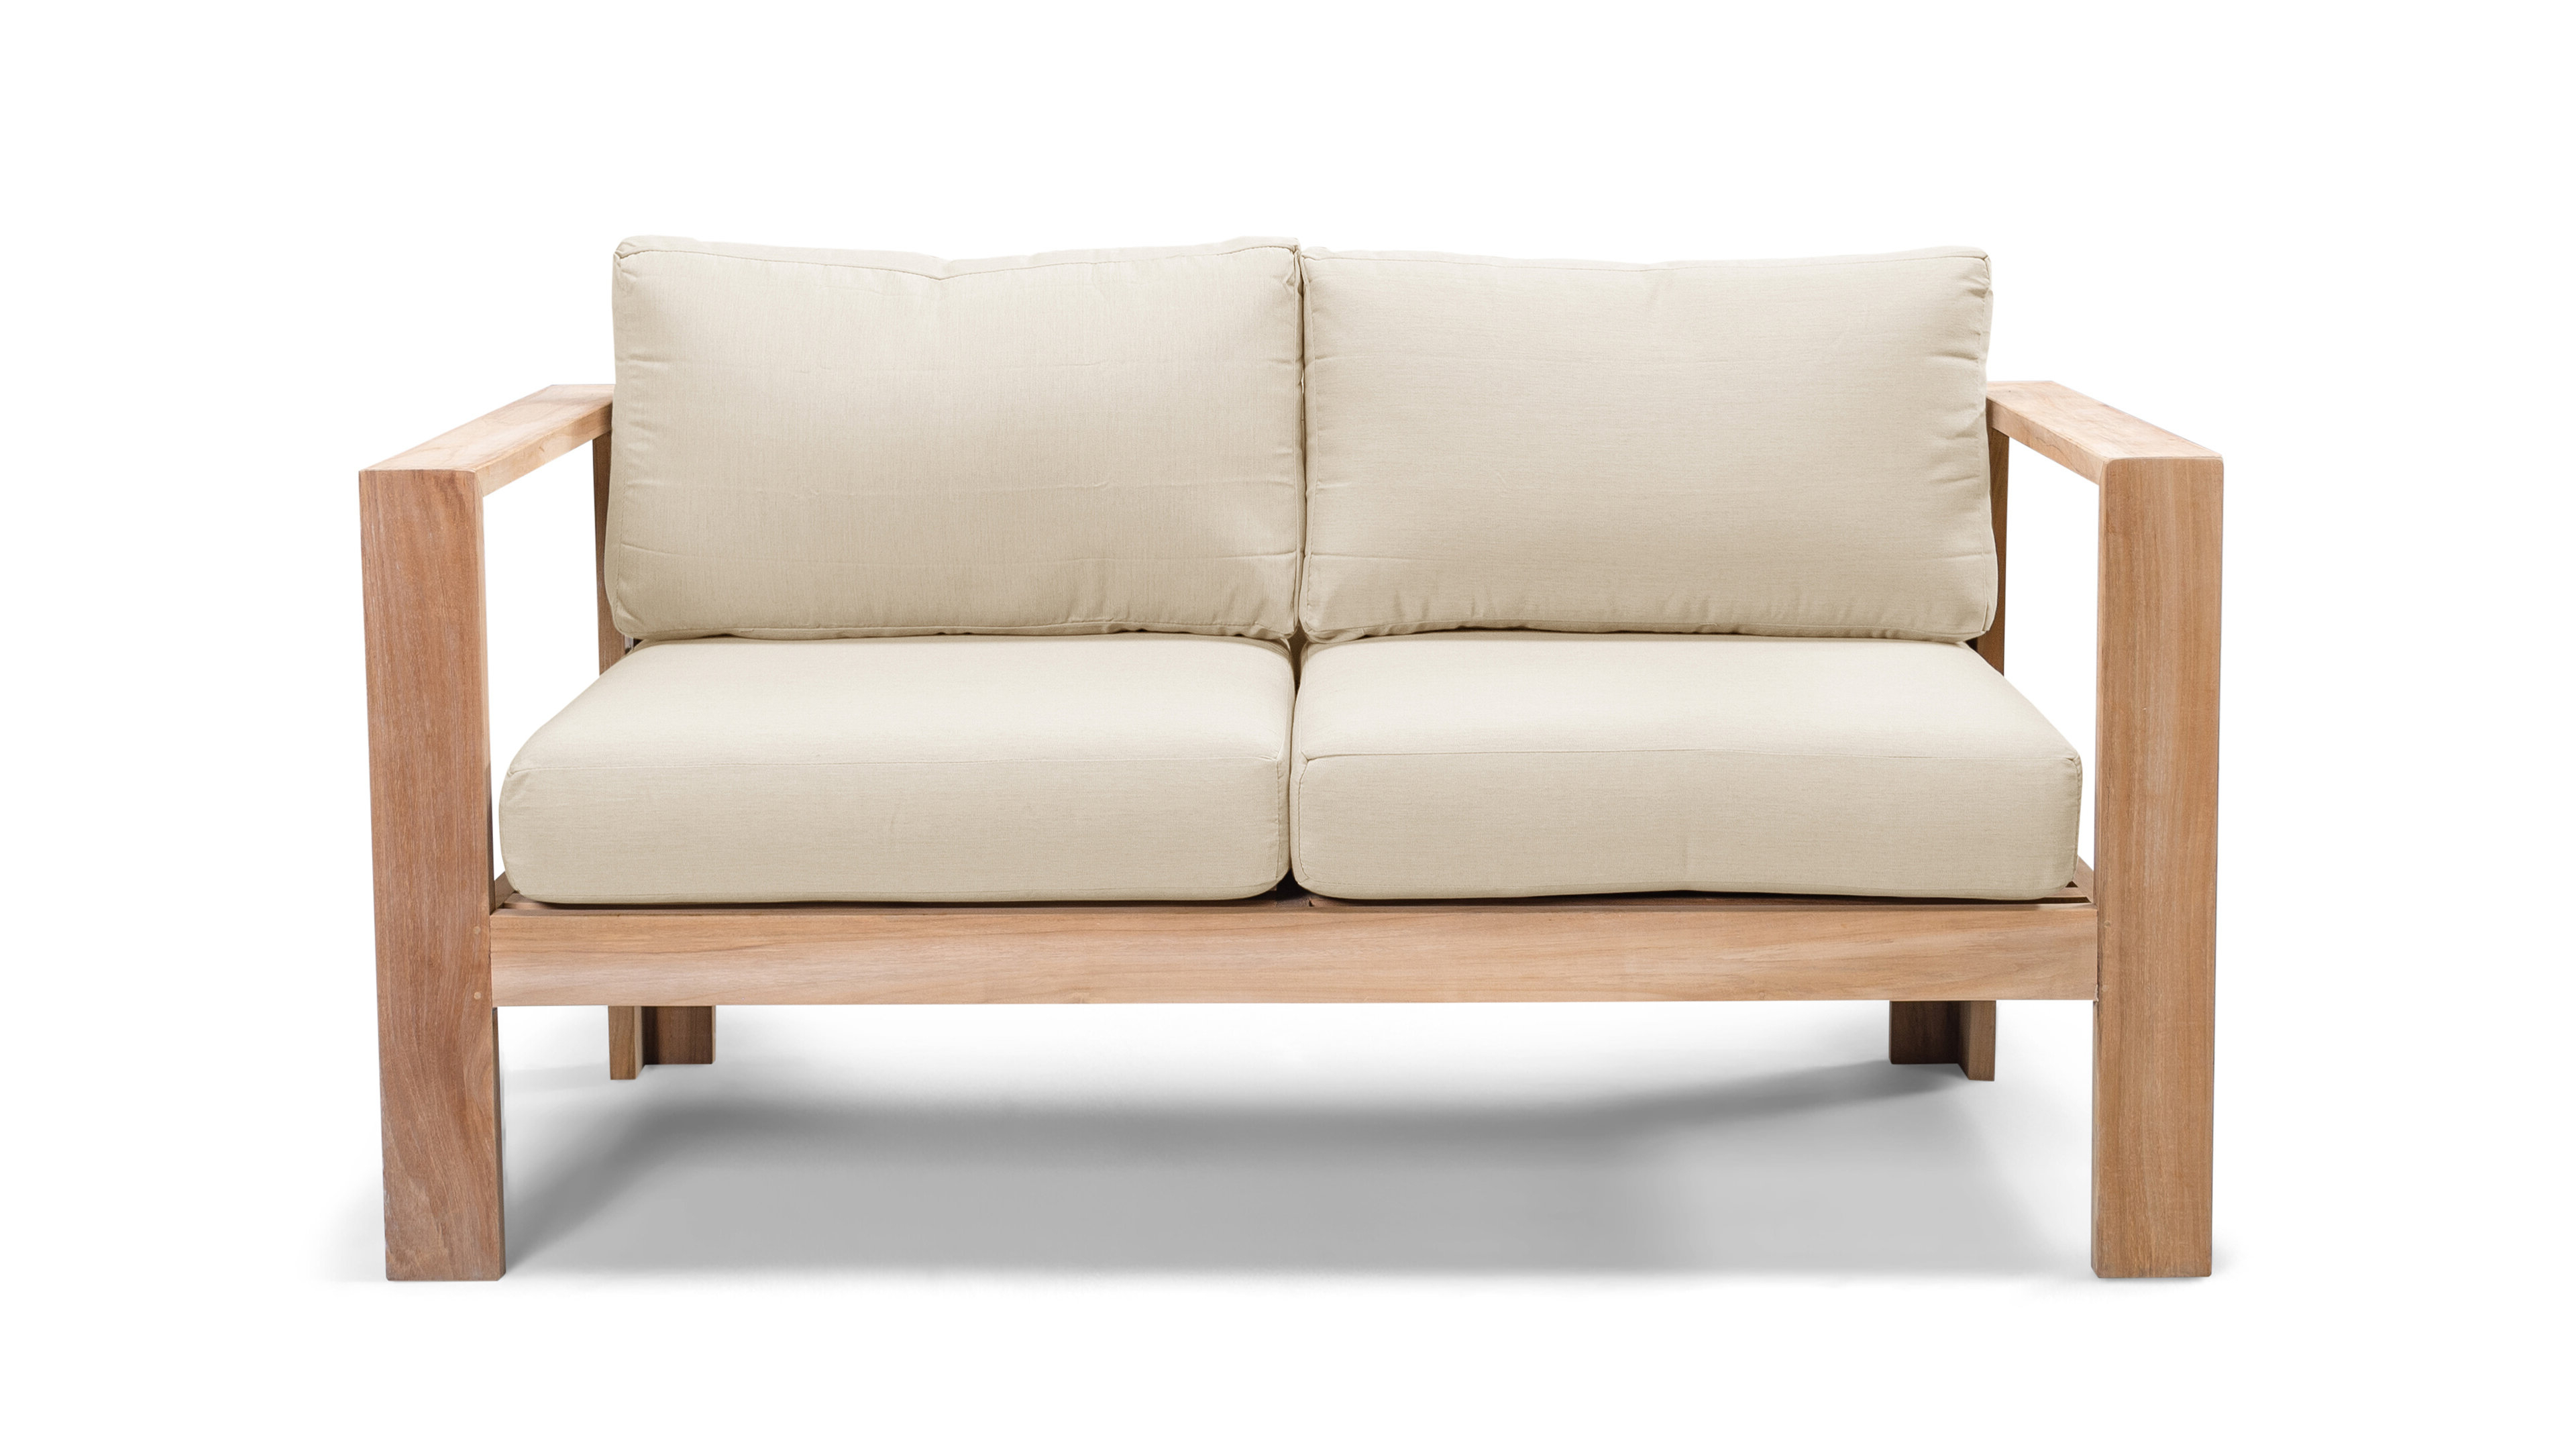 Preferred Gillian Loveseat With Cushions Pertaining To Calila Teak Loveseats With Cushion (View 17 of 20)